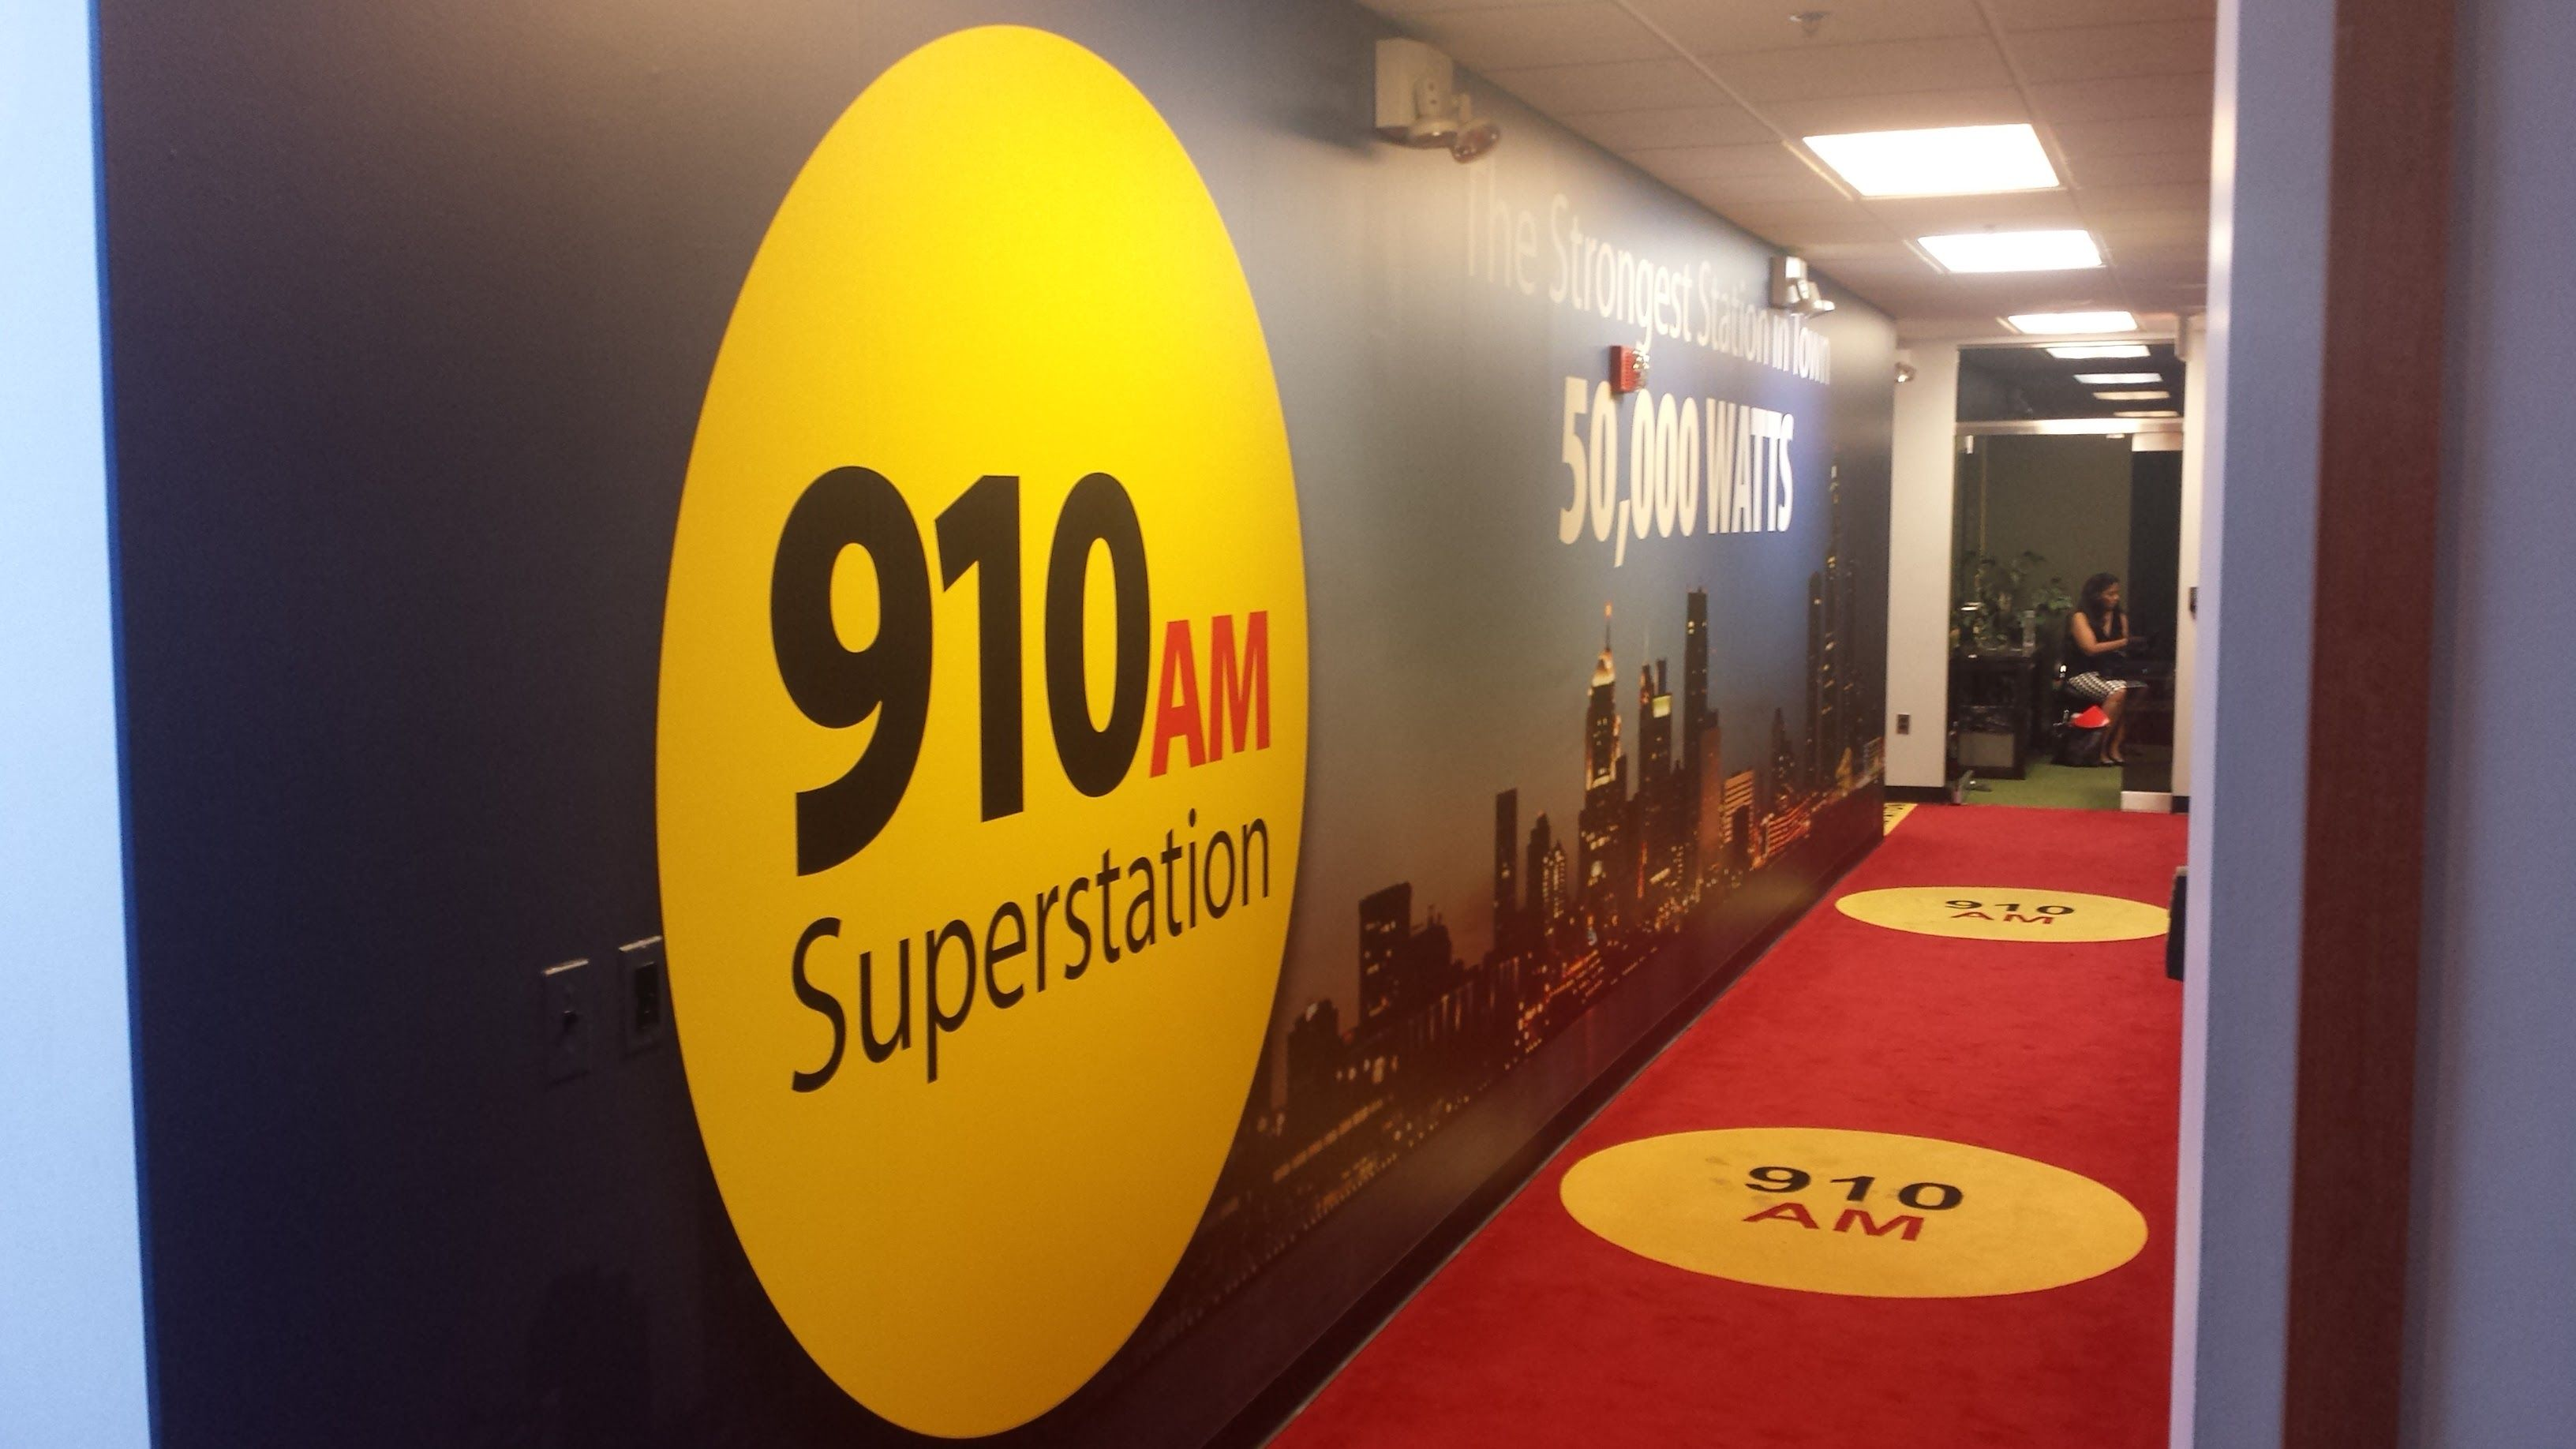 Full Wall Wrap on Both Sides of Hallway Wall Art @910Superstation ...